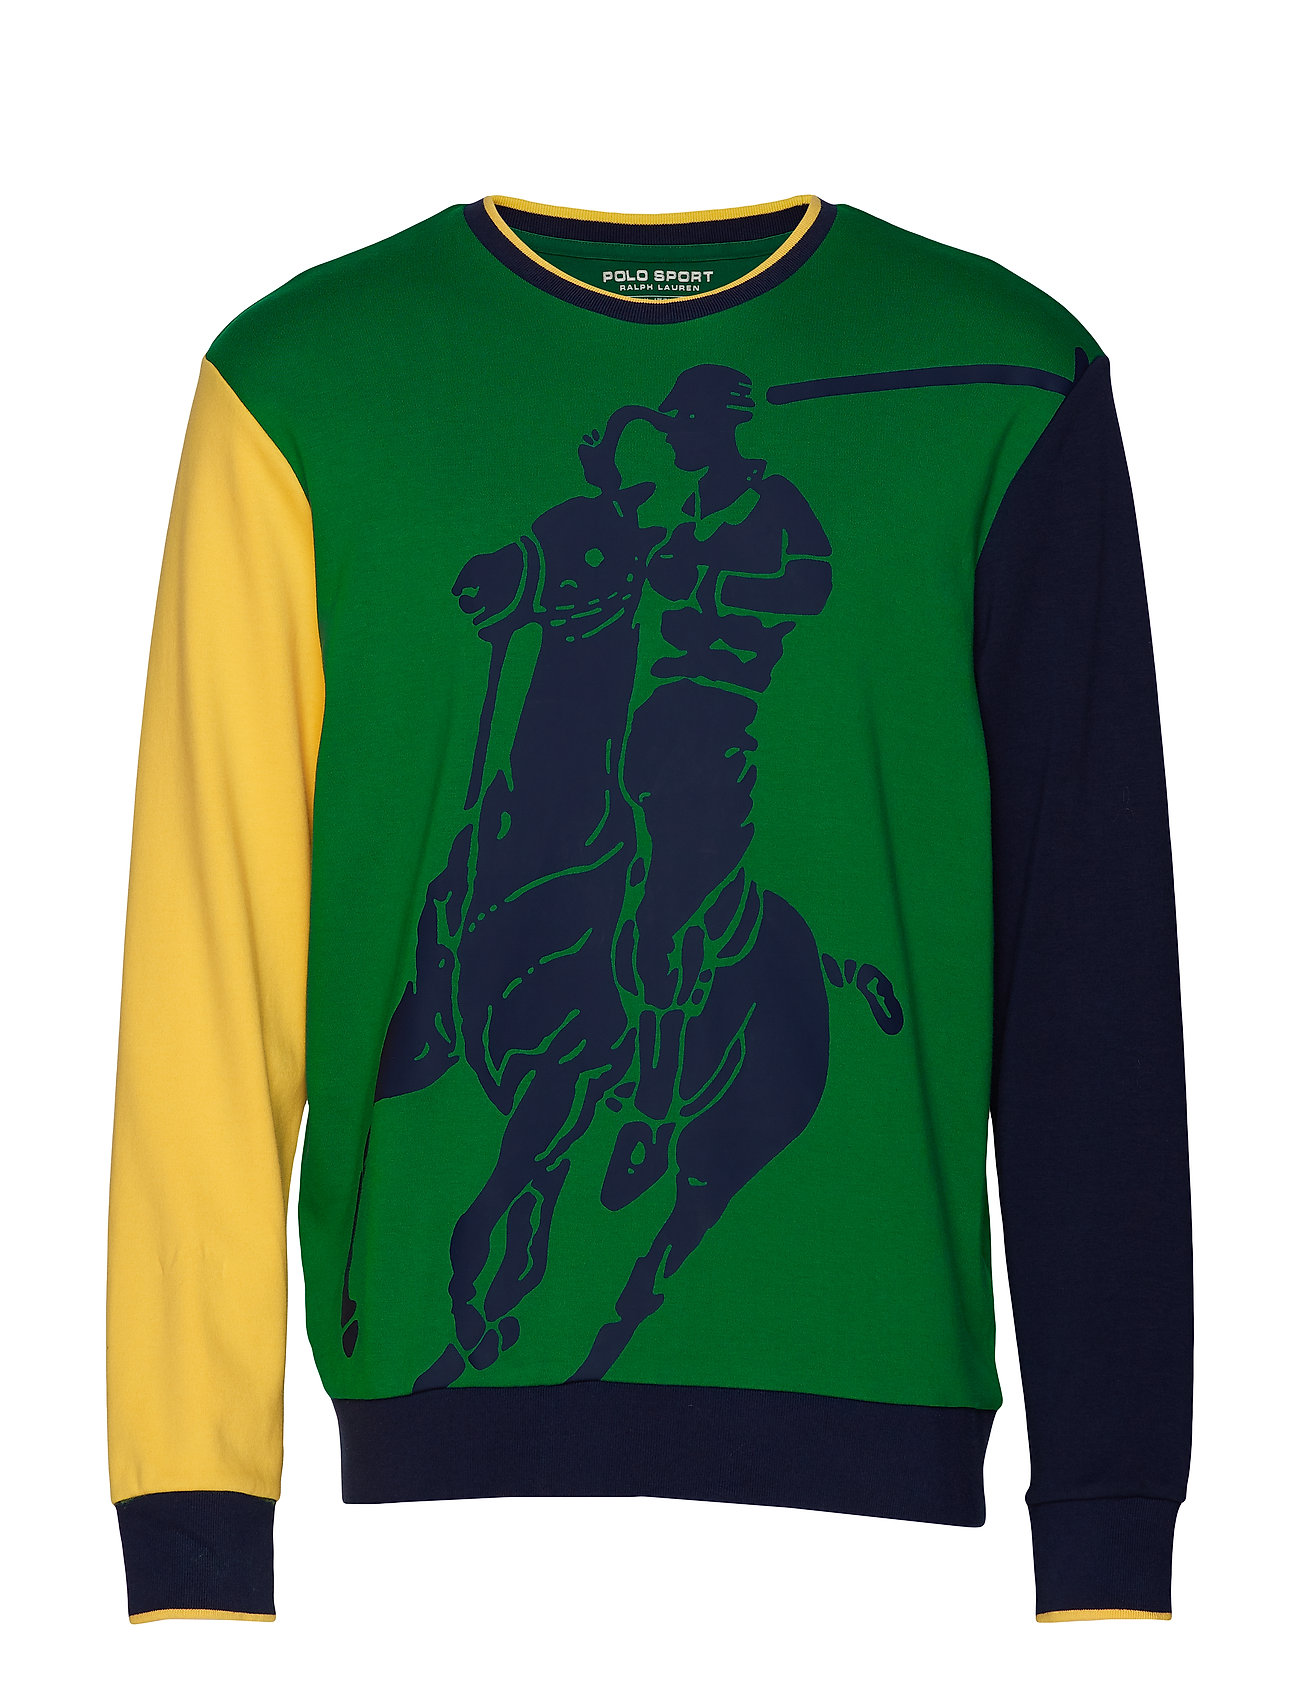 Interlock Graphic cruisenvPolo Teejerrygrn Ralph Lauren Cotton TcF1ulKJ3